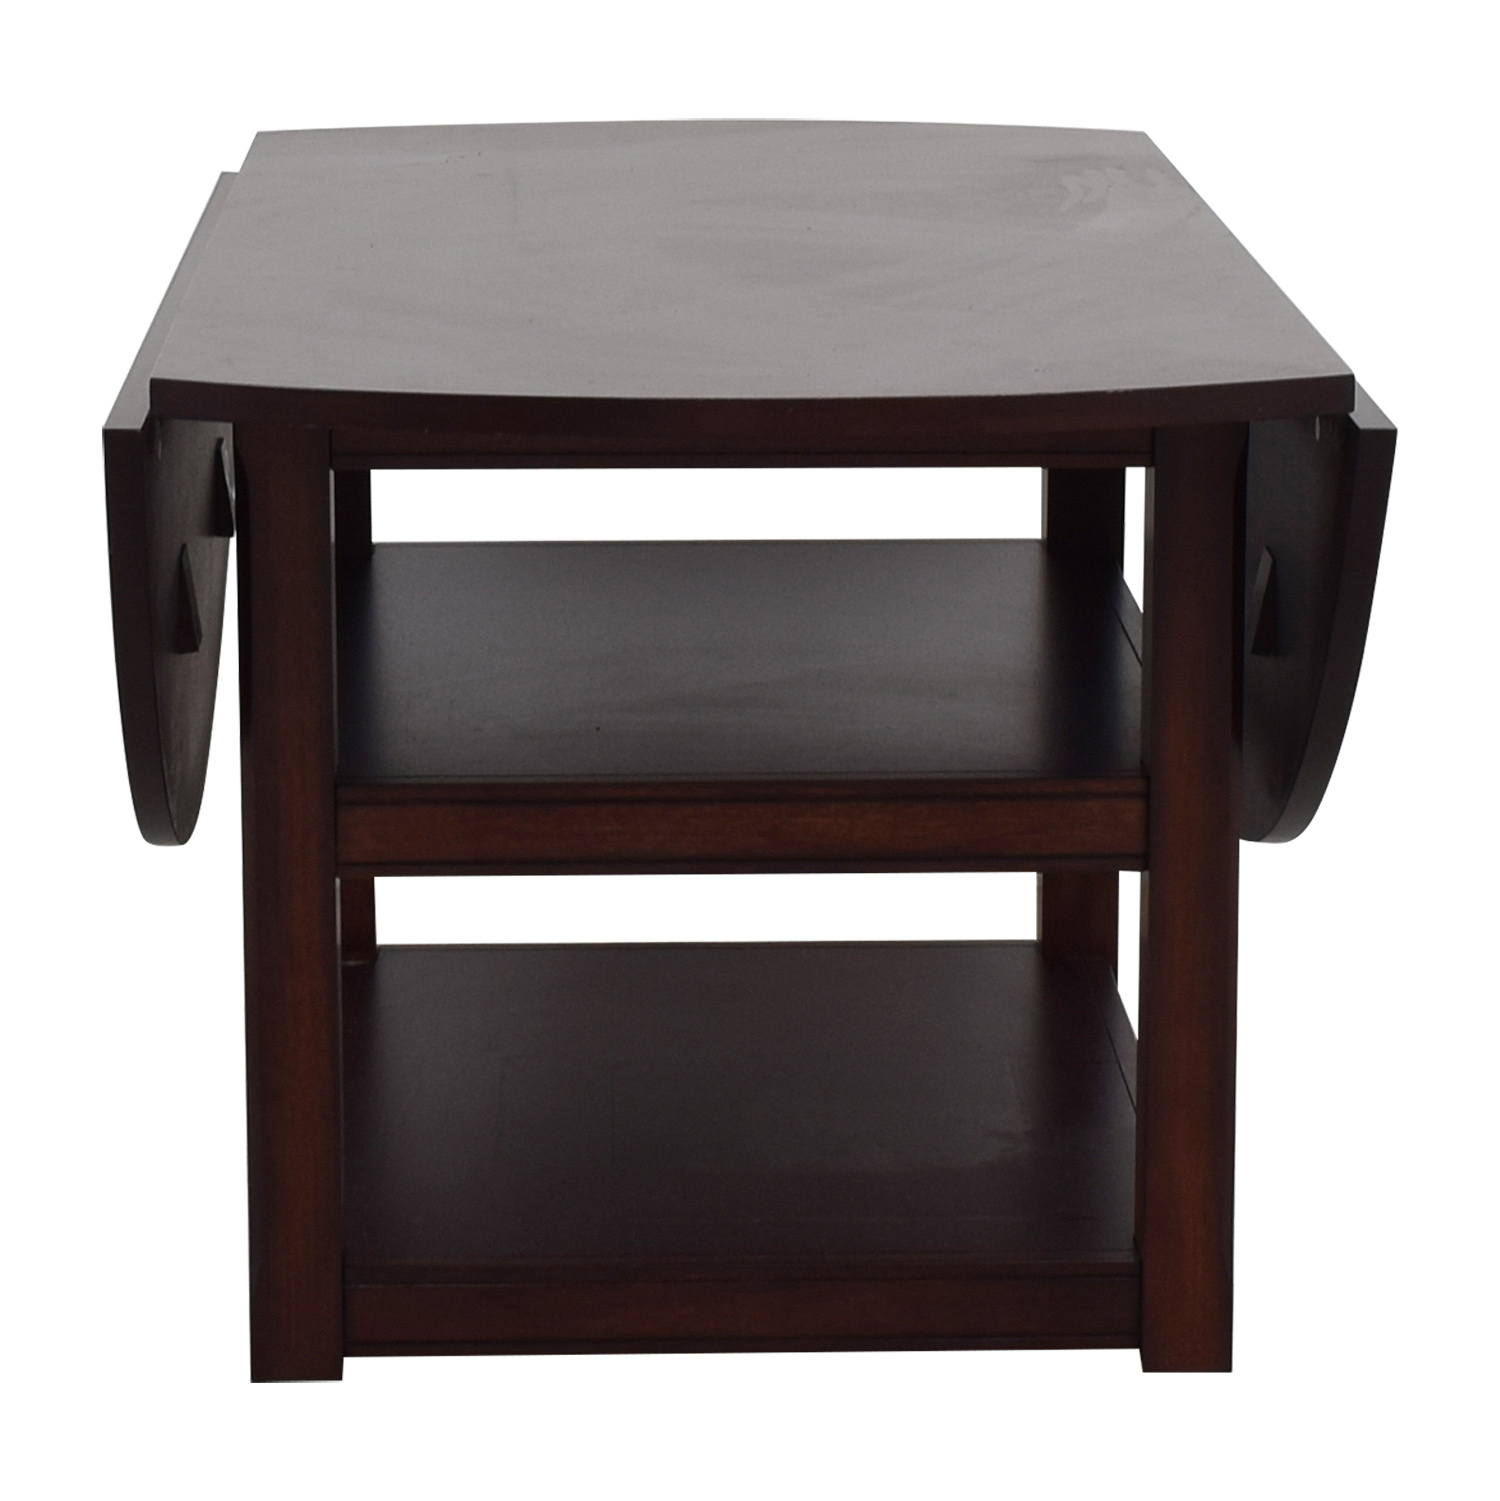 44% OFF - Pottery Barn Pottery Barn Shayne Drop-Leaf Kitchen Table / Tables